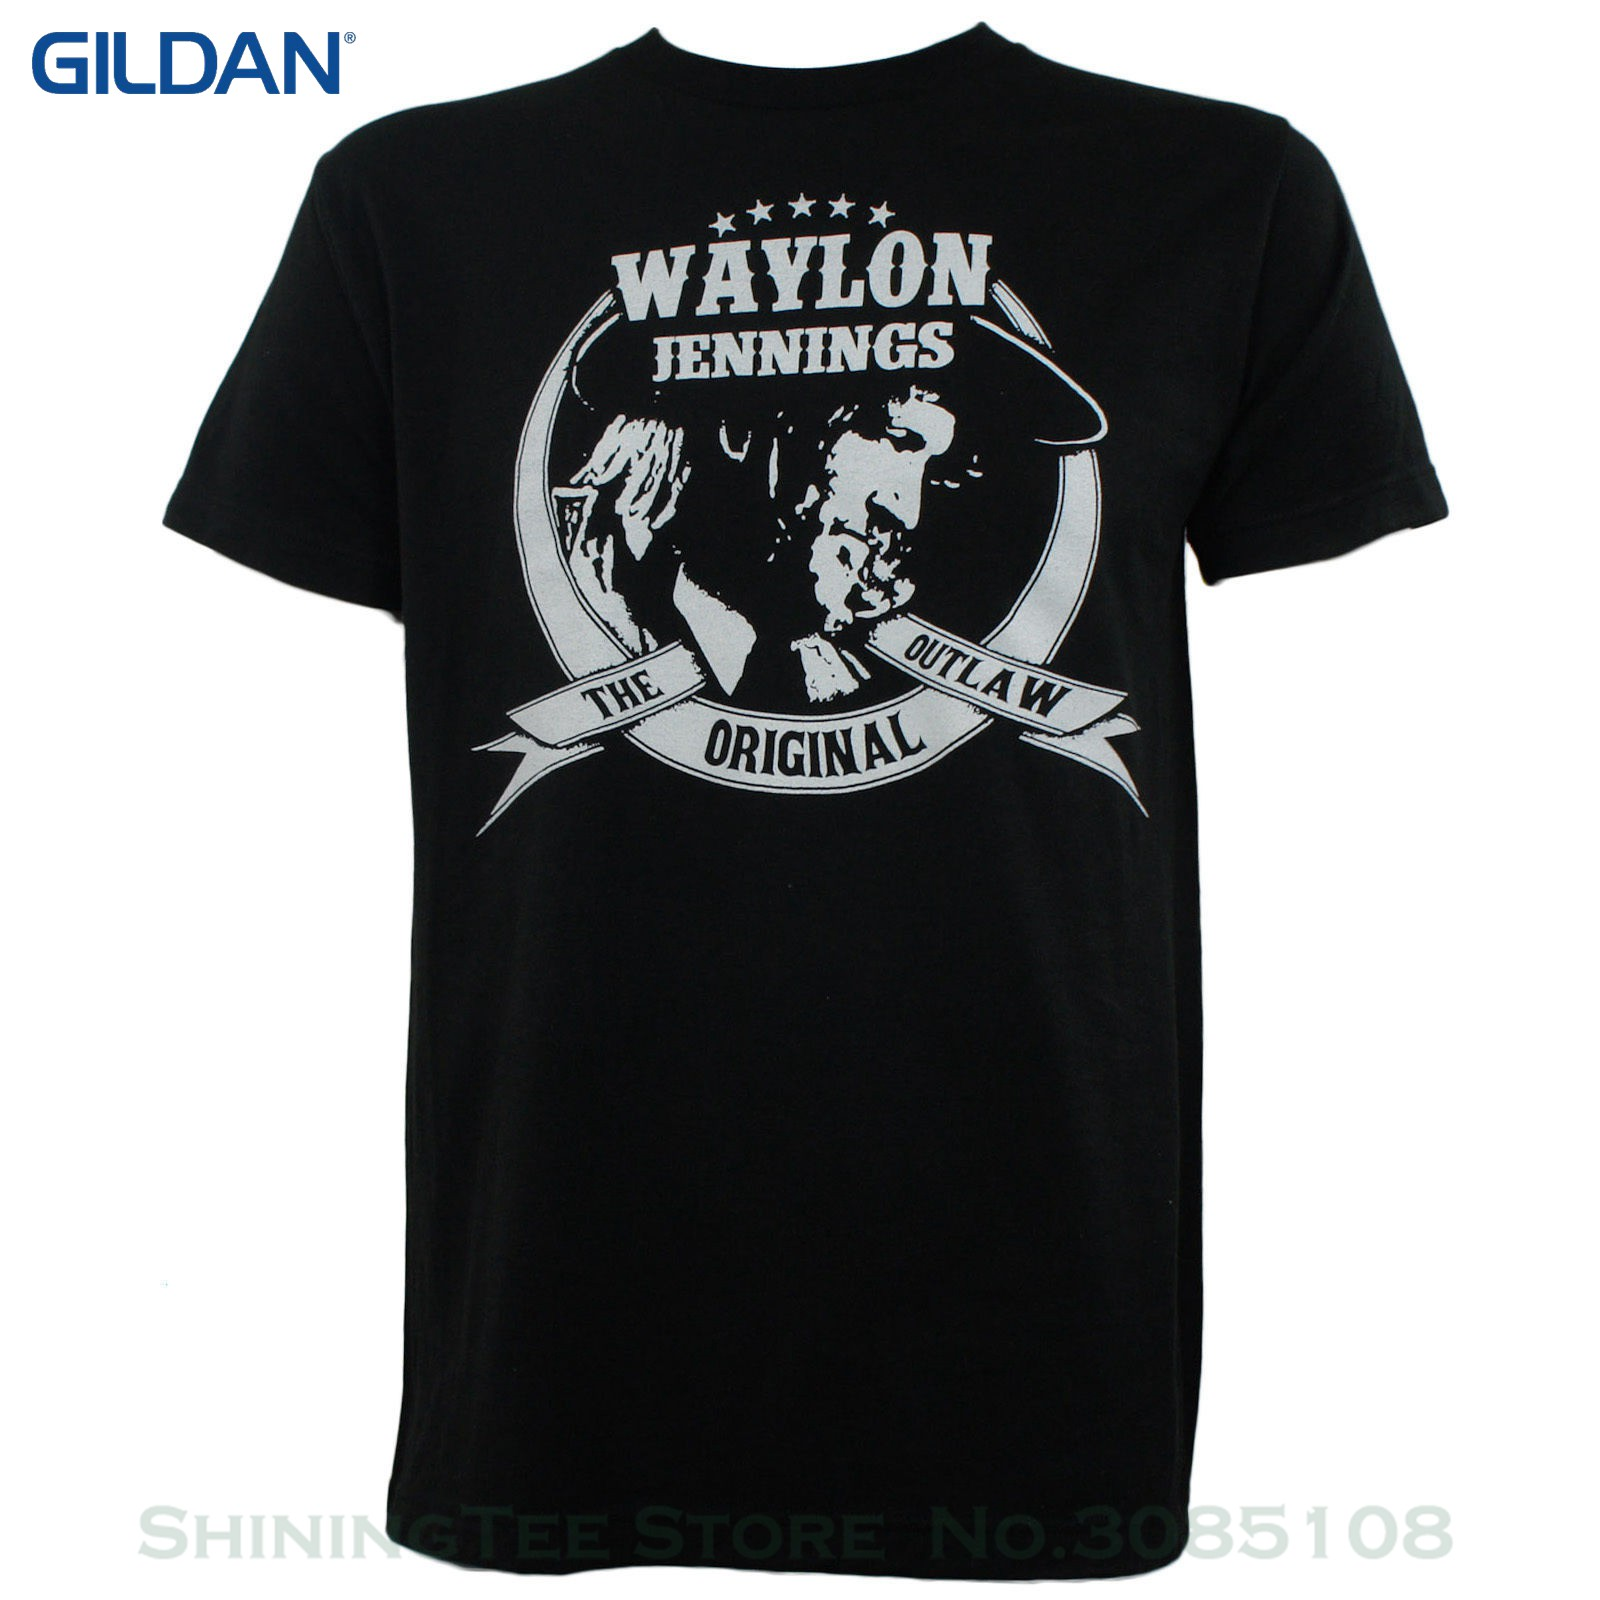 81a361f8 T Shirt Hot Topic Men Short Sleeve Authentic Waylon Jennings The Original  Outlaw Photo Slim-fit T-shirt S-3xl New